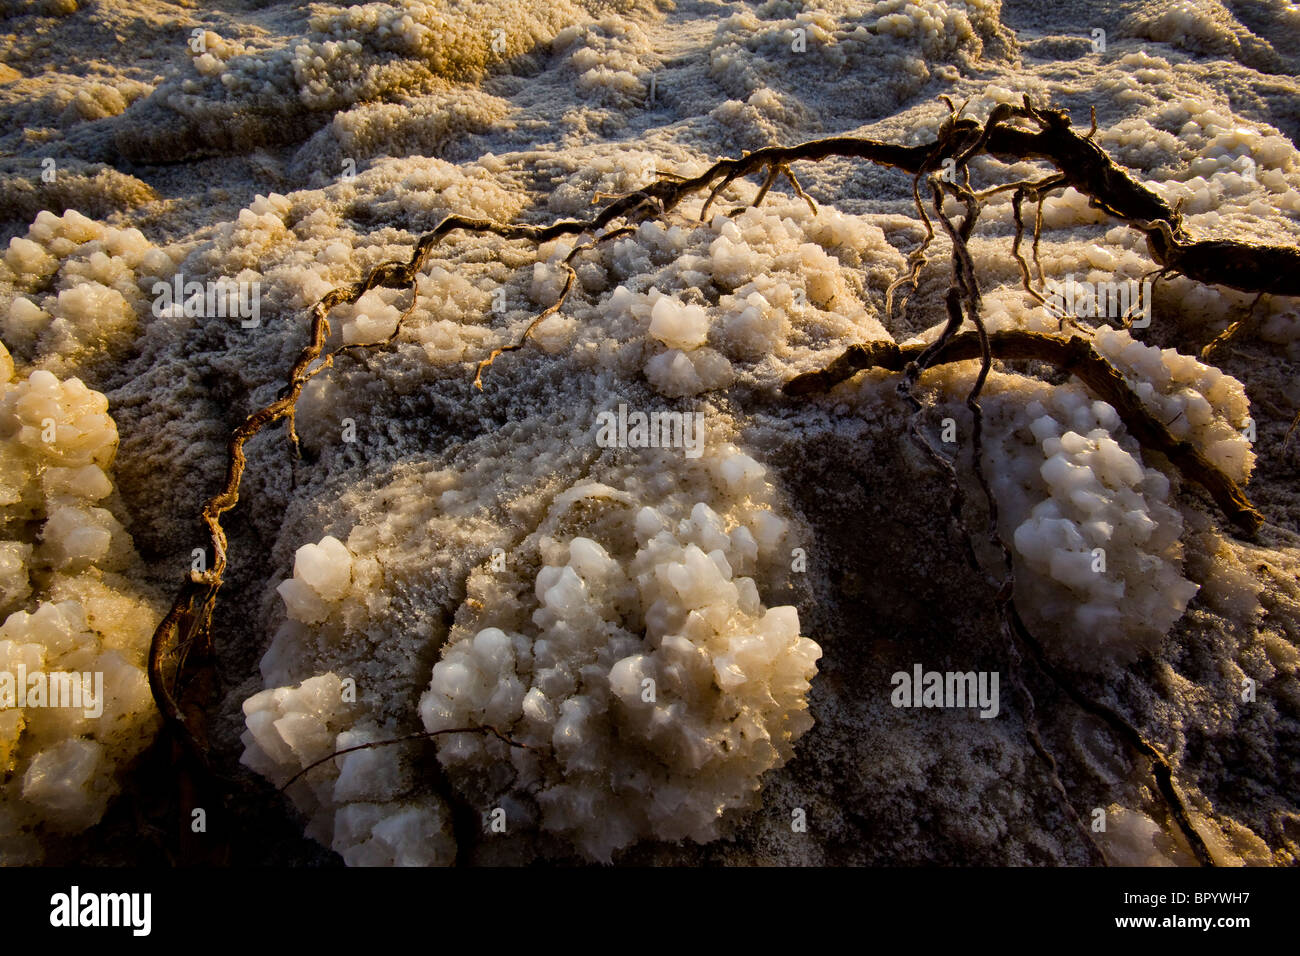 Closeup on a root covered with salt crystals in the Dead Sea - Stock Image